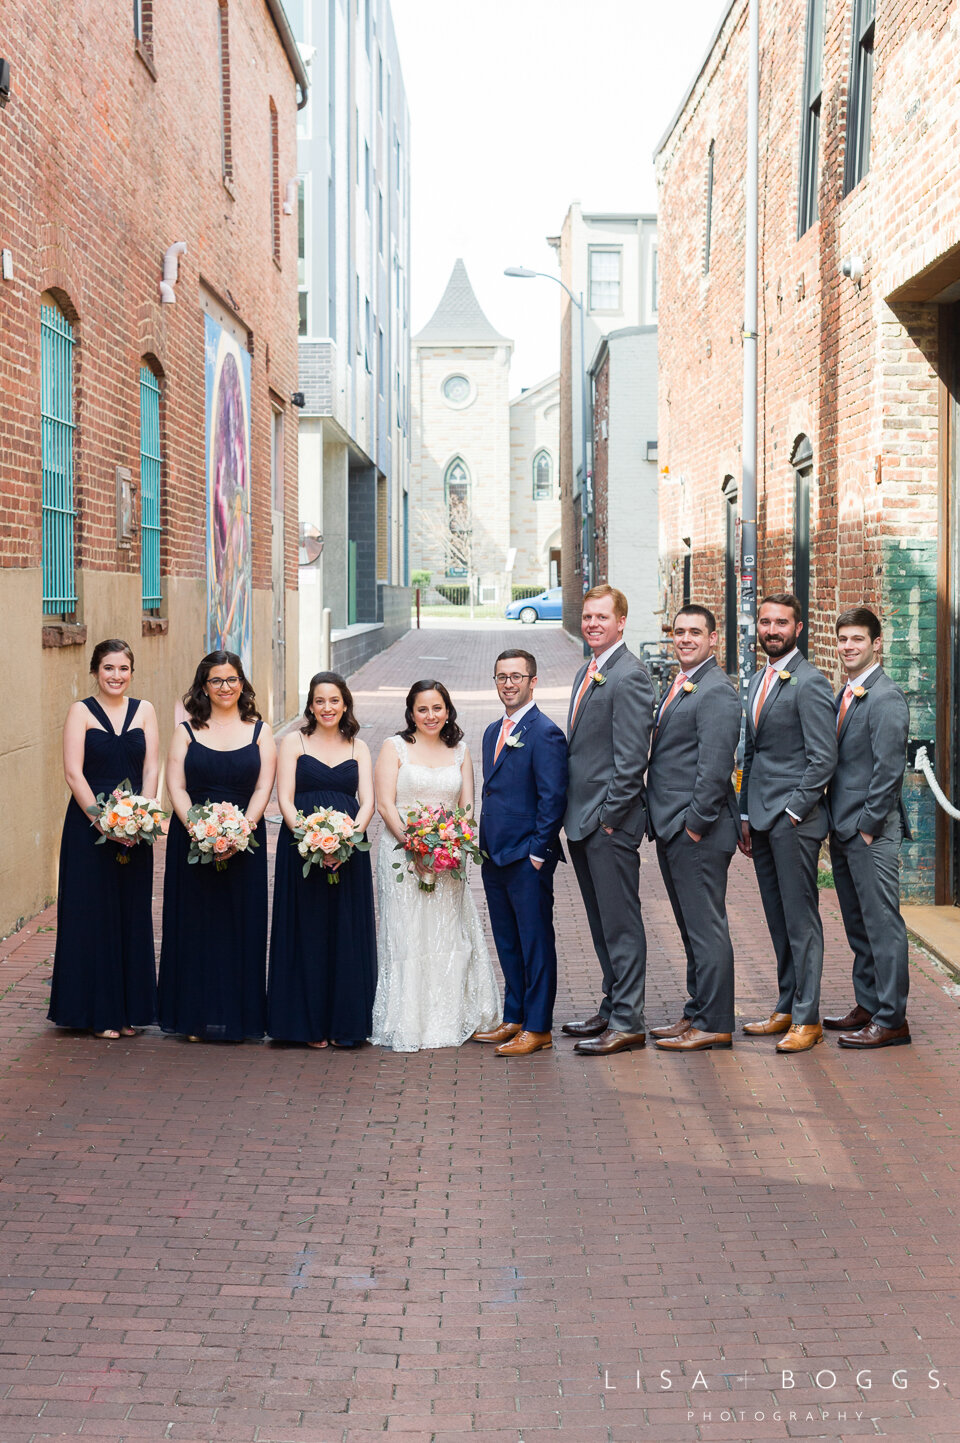 Emma & Evan's Colorful Urban Wedding at Long View Gallery